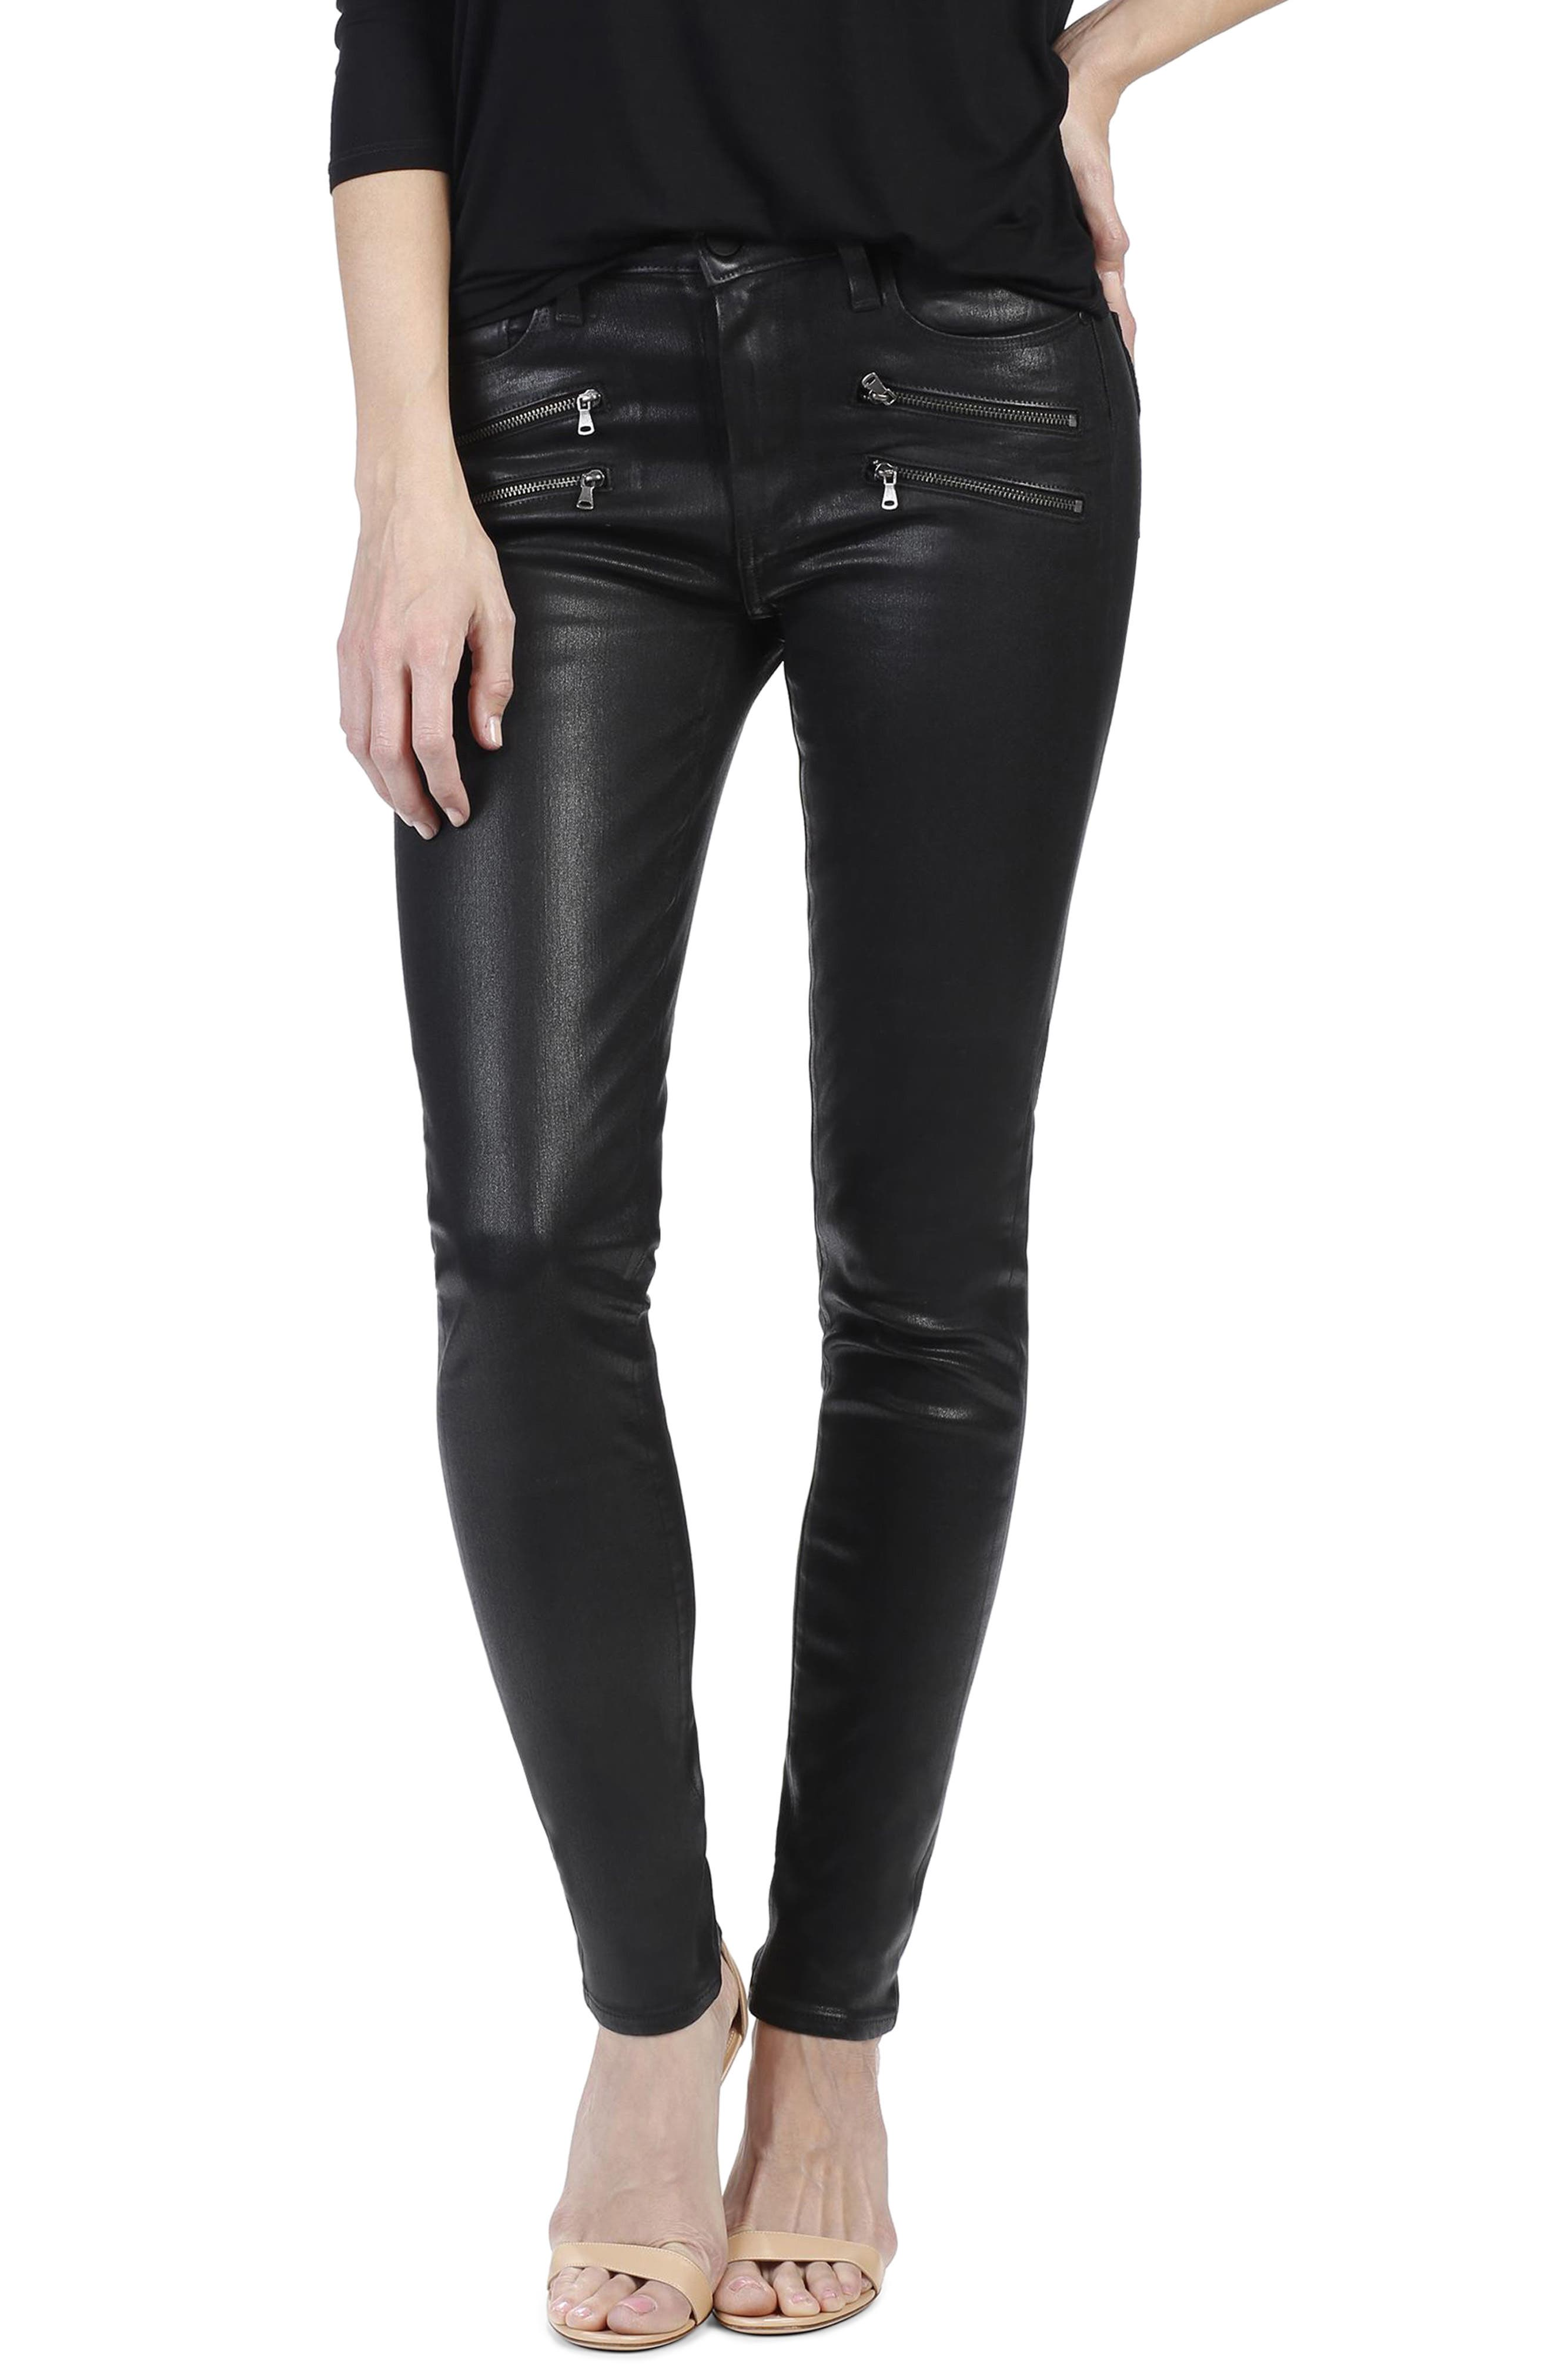 PAIGE Edgemont Zip Coated High Waist Ultra Skinny Jeans